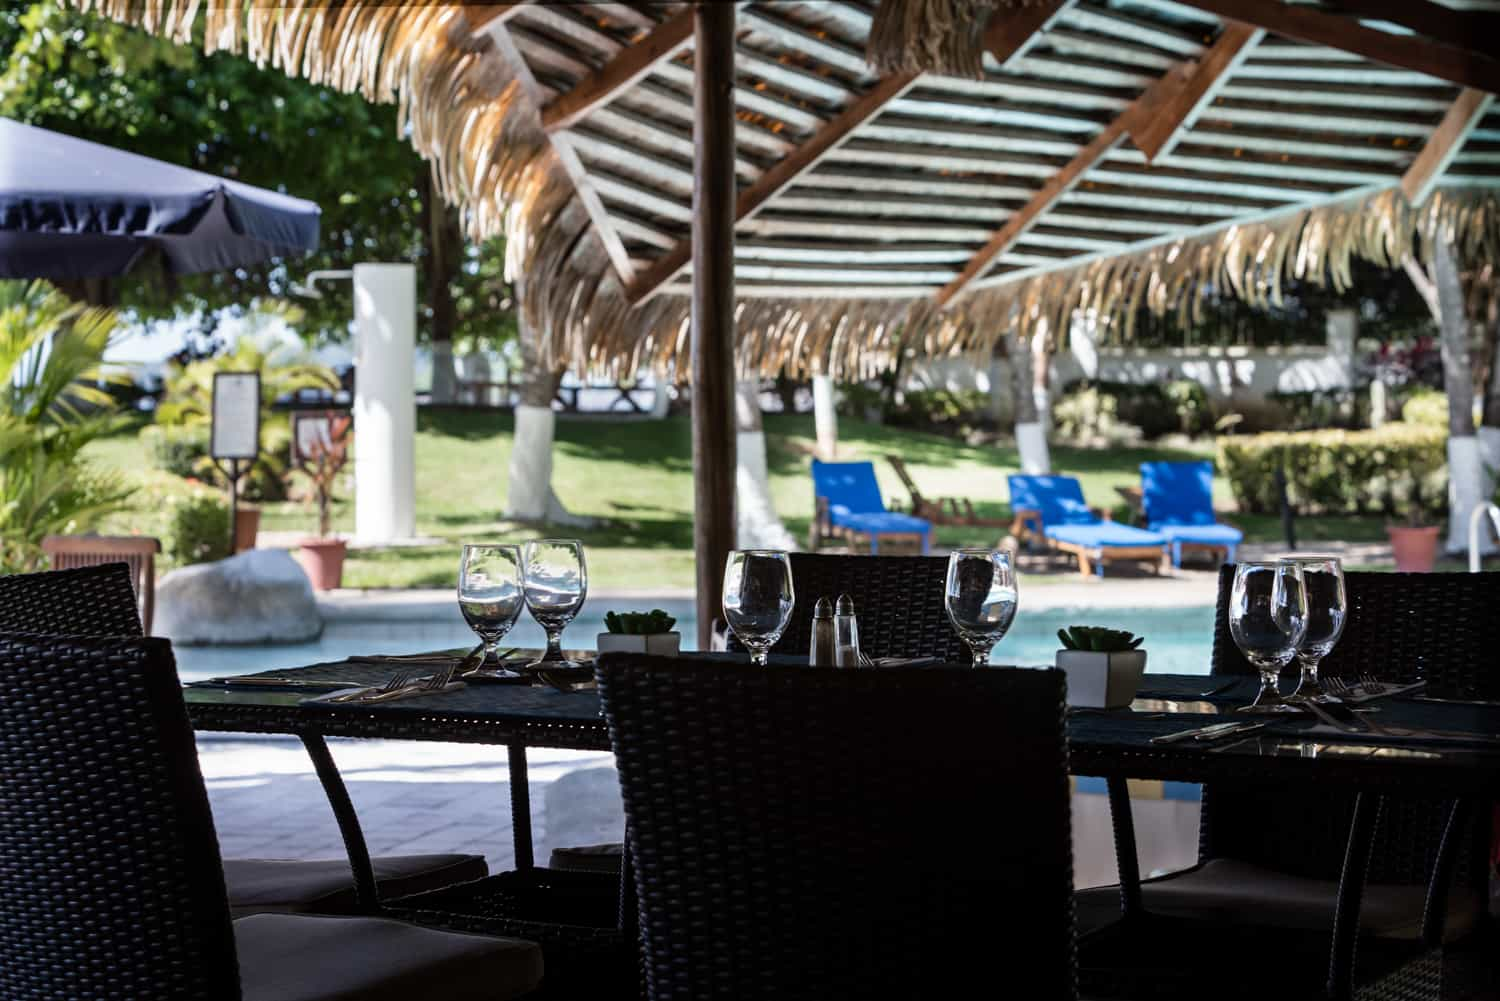 View of pool for wedding guests at Bahia del Sol Hotel.